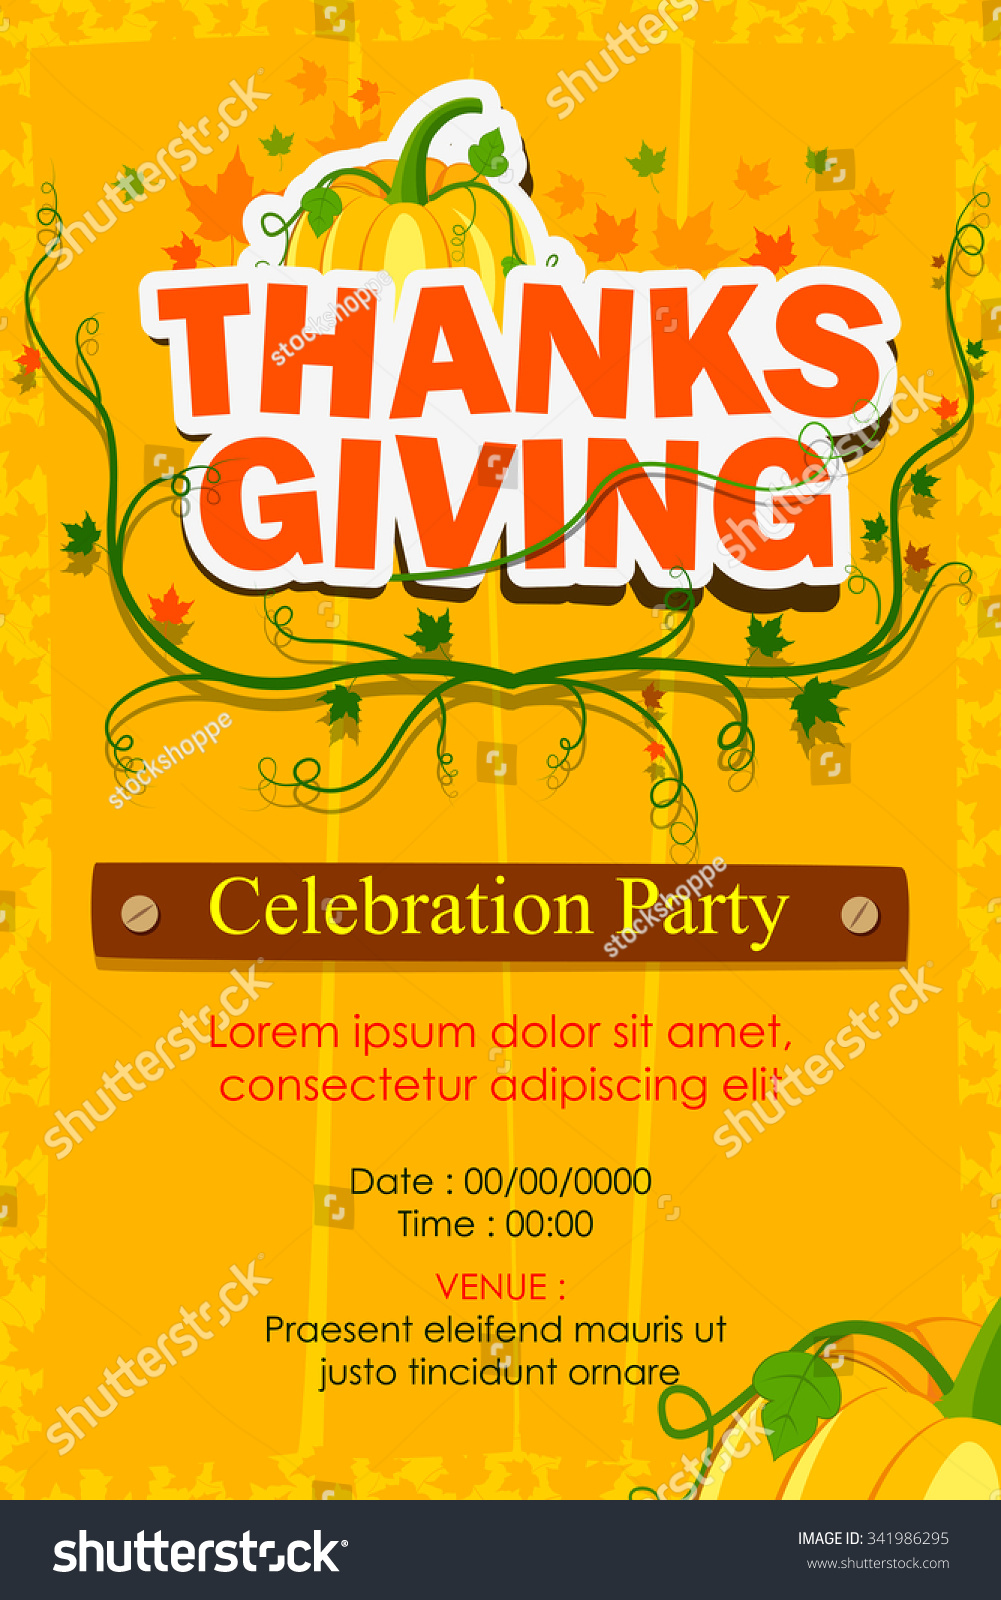 Vector Illustration Happy Thanksgiving Party Invitation Stock Photo ...